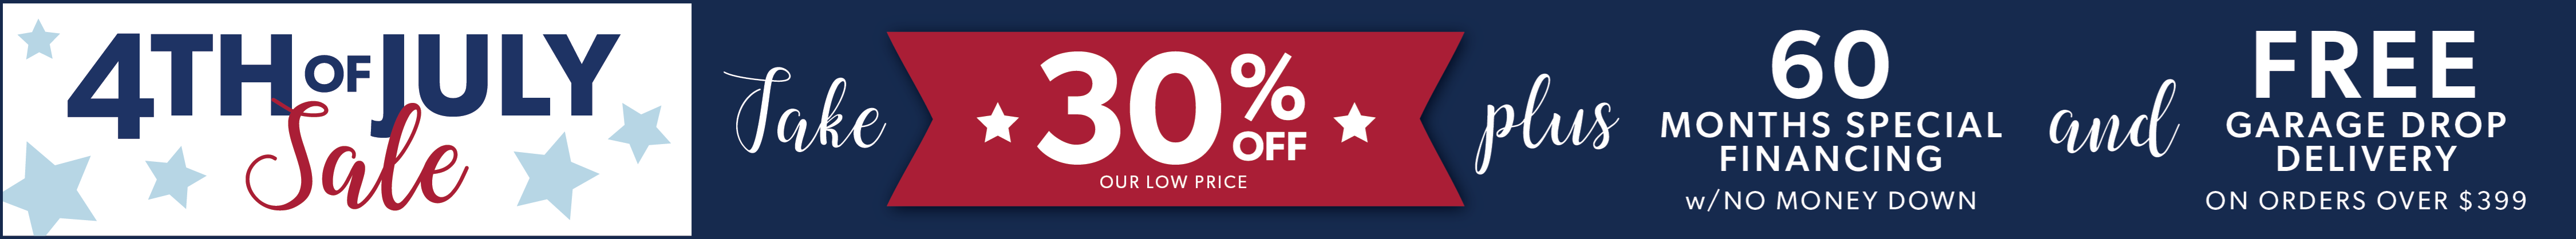 4th of July Sale Going On Now!